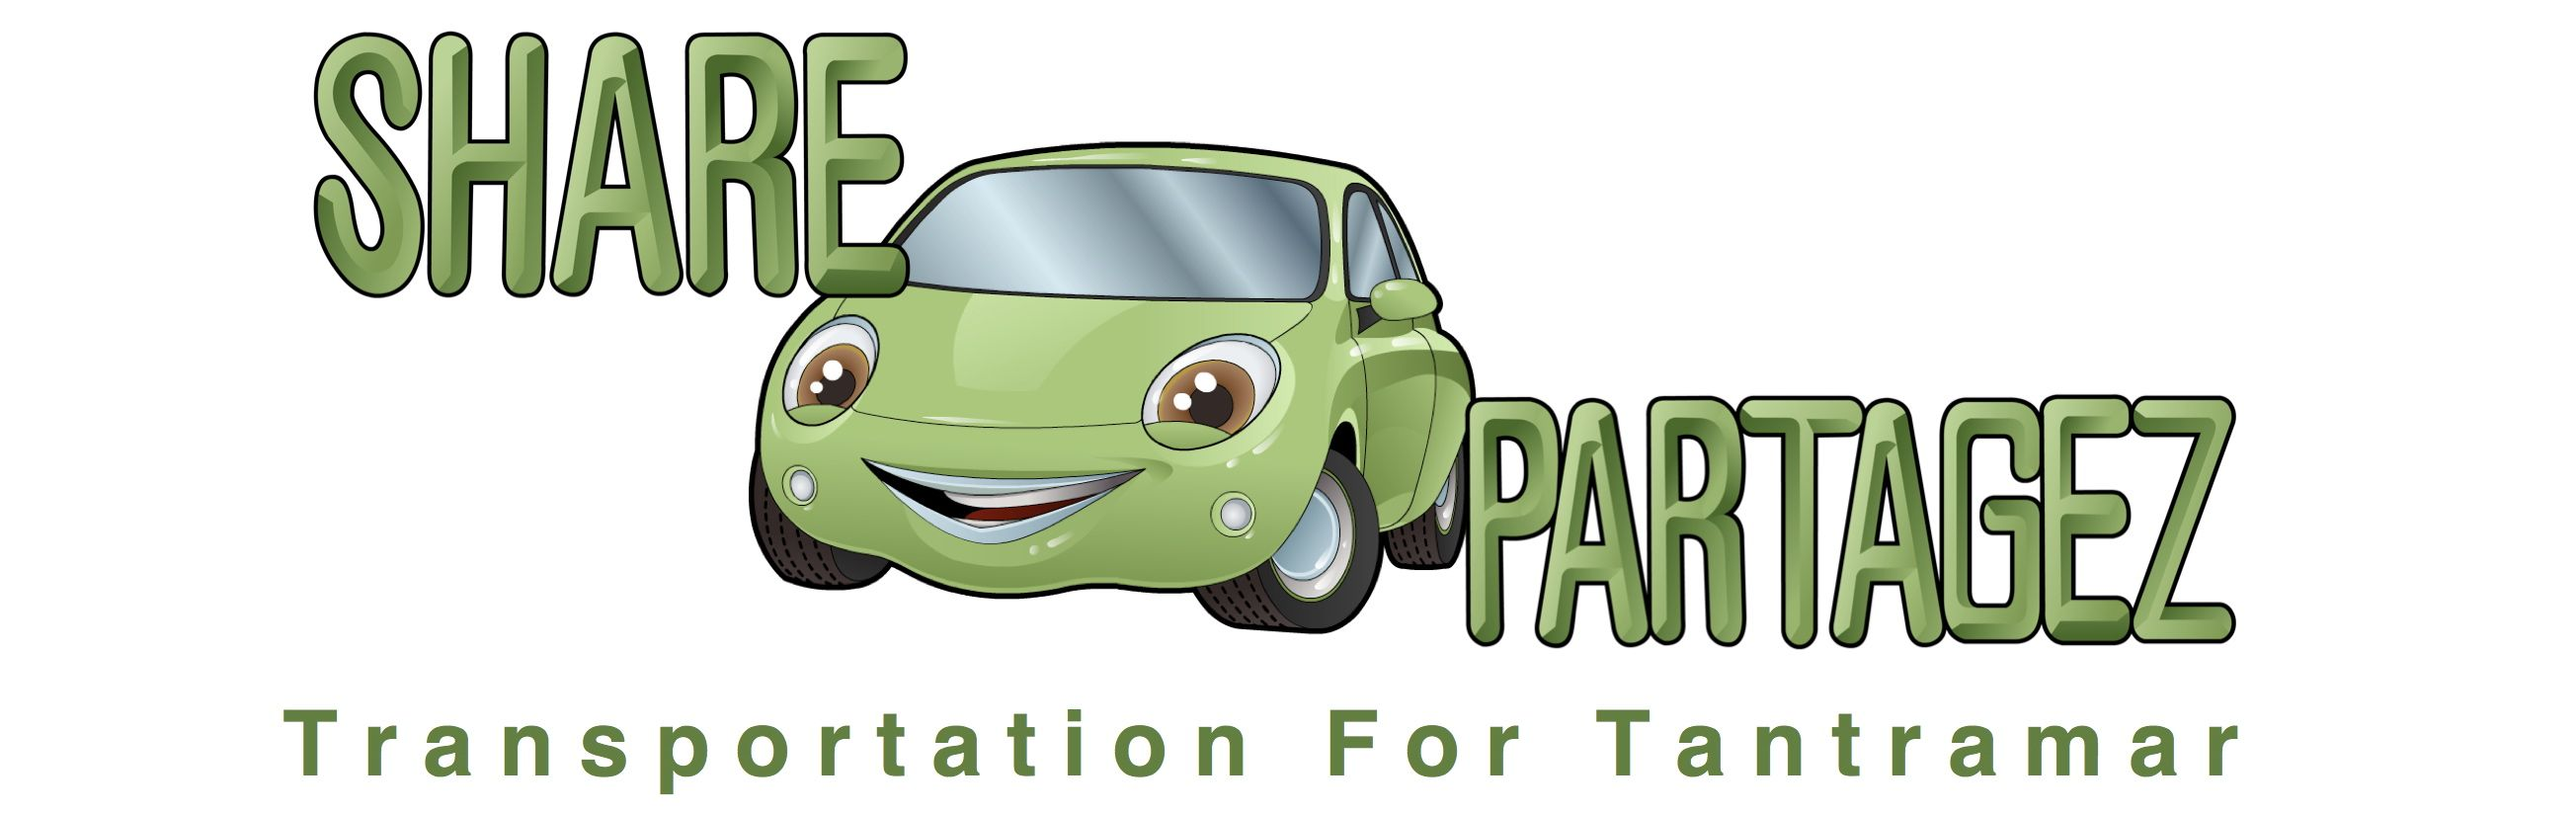 Transportation for Tantramar — a transportation strategy for Tantramar